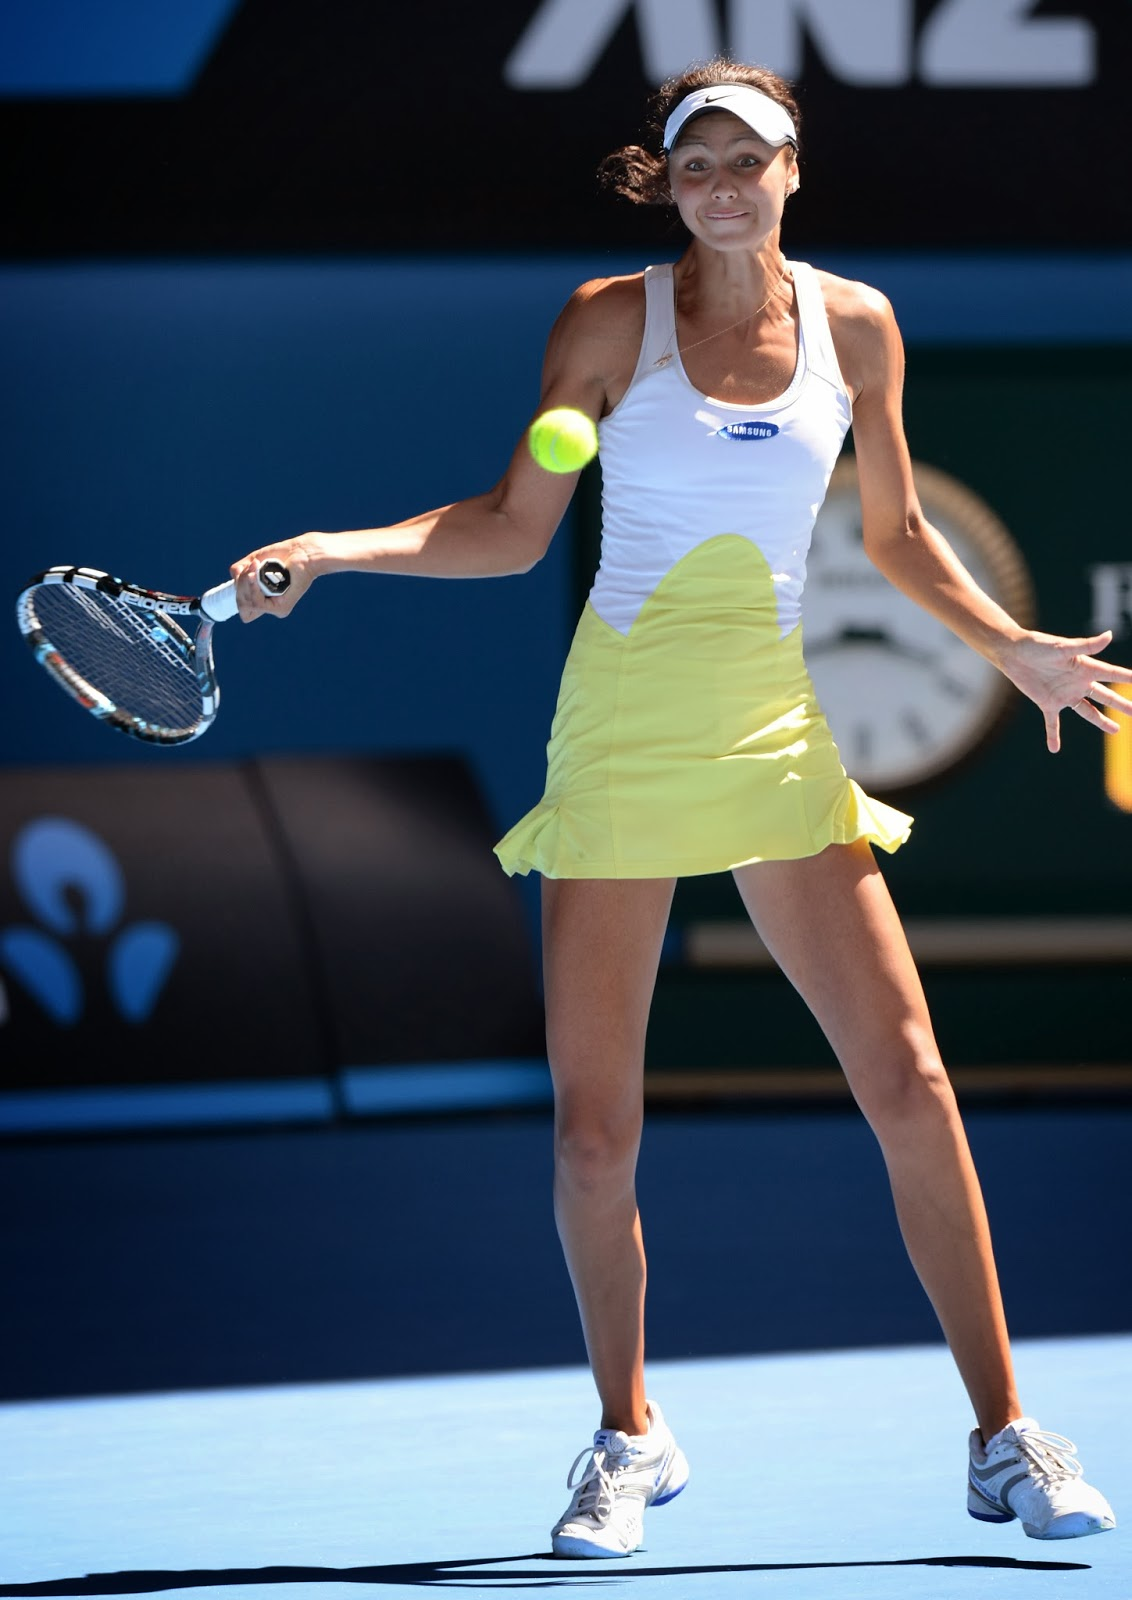 Elizaveta Kulichkova, Russia, Trophy, Victory, Winner, Girls, Singles, Final, Jana Fett, Croatia, Tennis, Australian Open, 2014, Melbourne, Tournament, Title, Match, Australia,